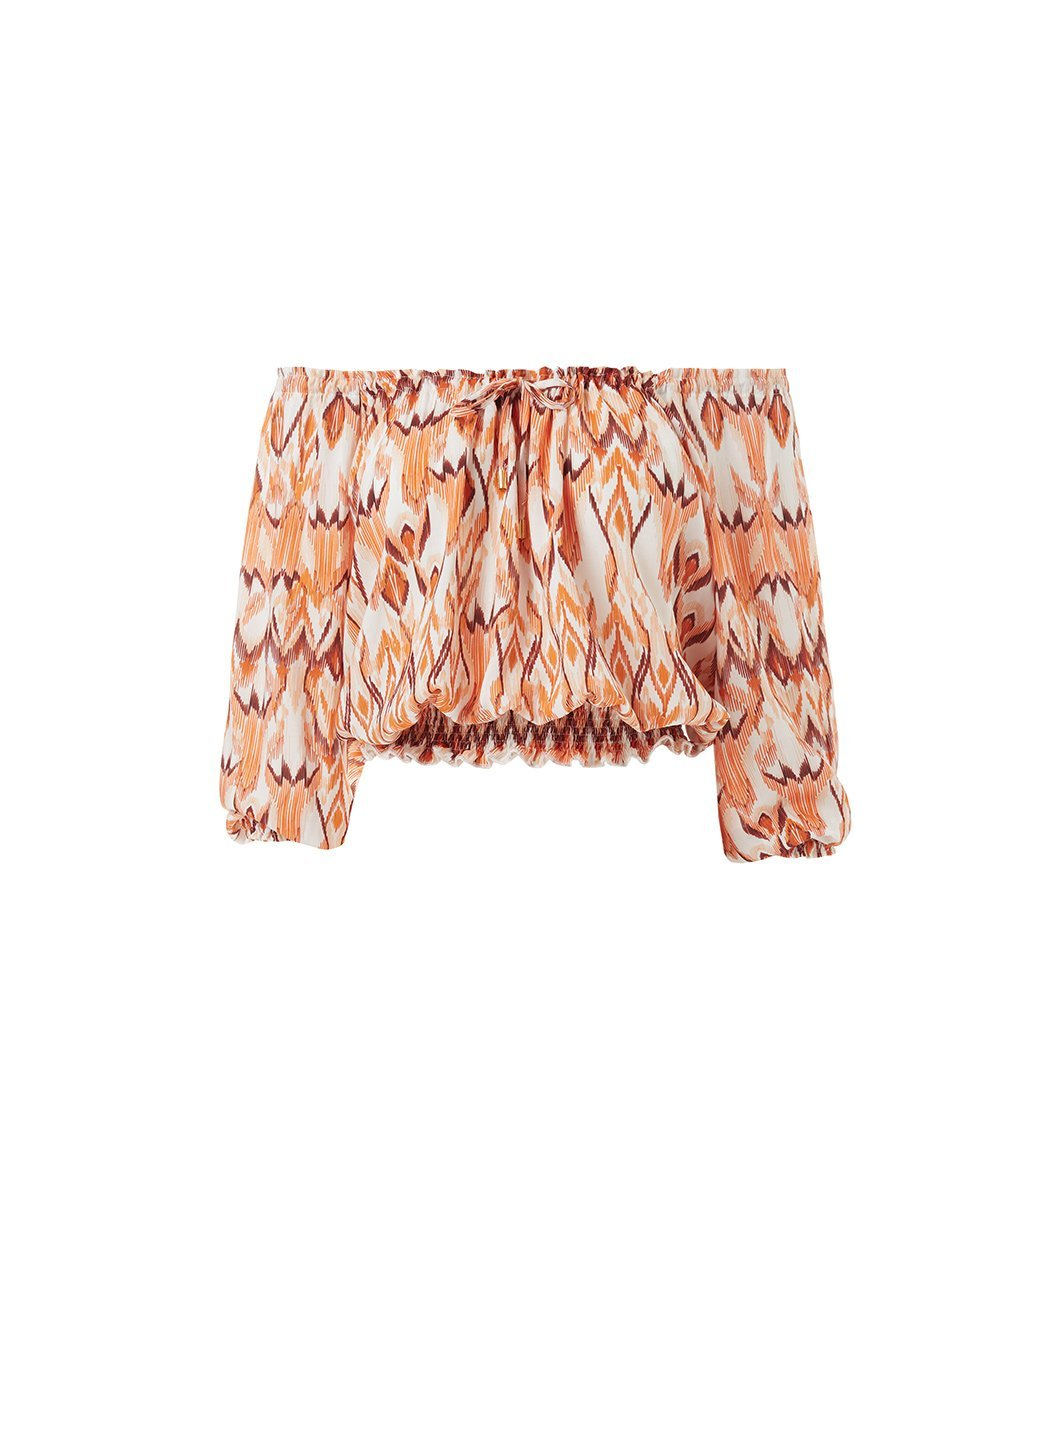 anne ikat offtheshoulder short sleeve top 2019